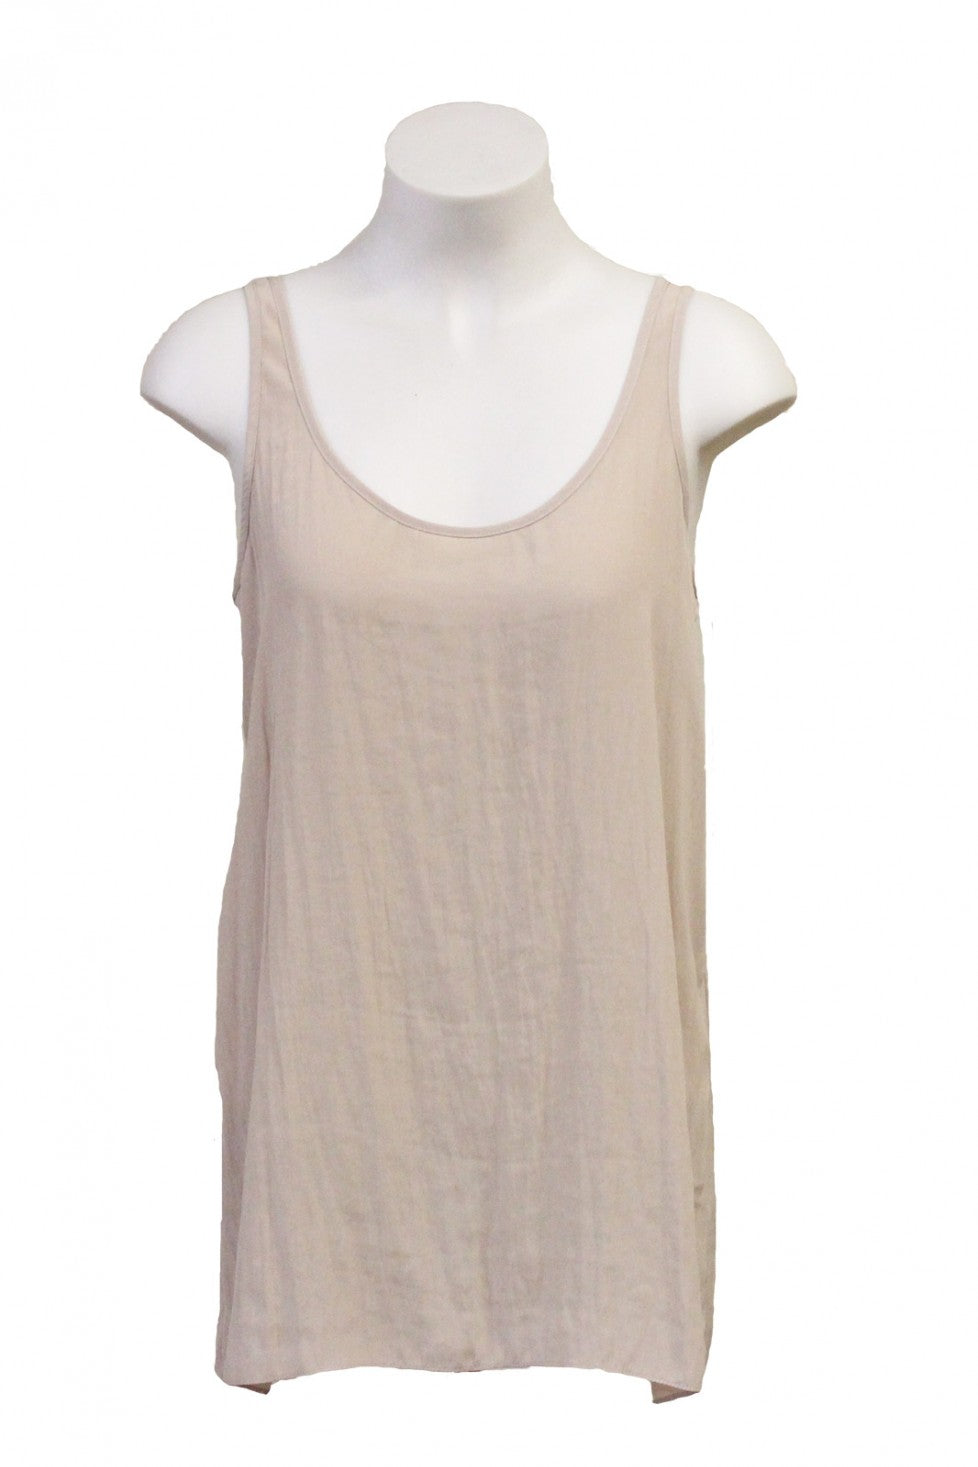 Camel Slip Mela Purdie Tank Top Style and Grace